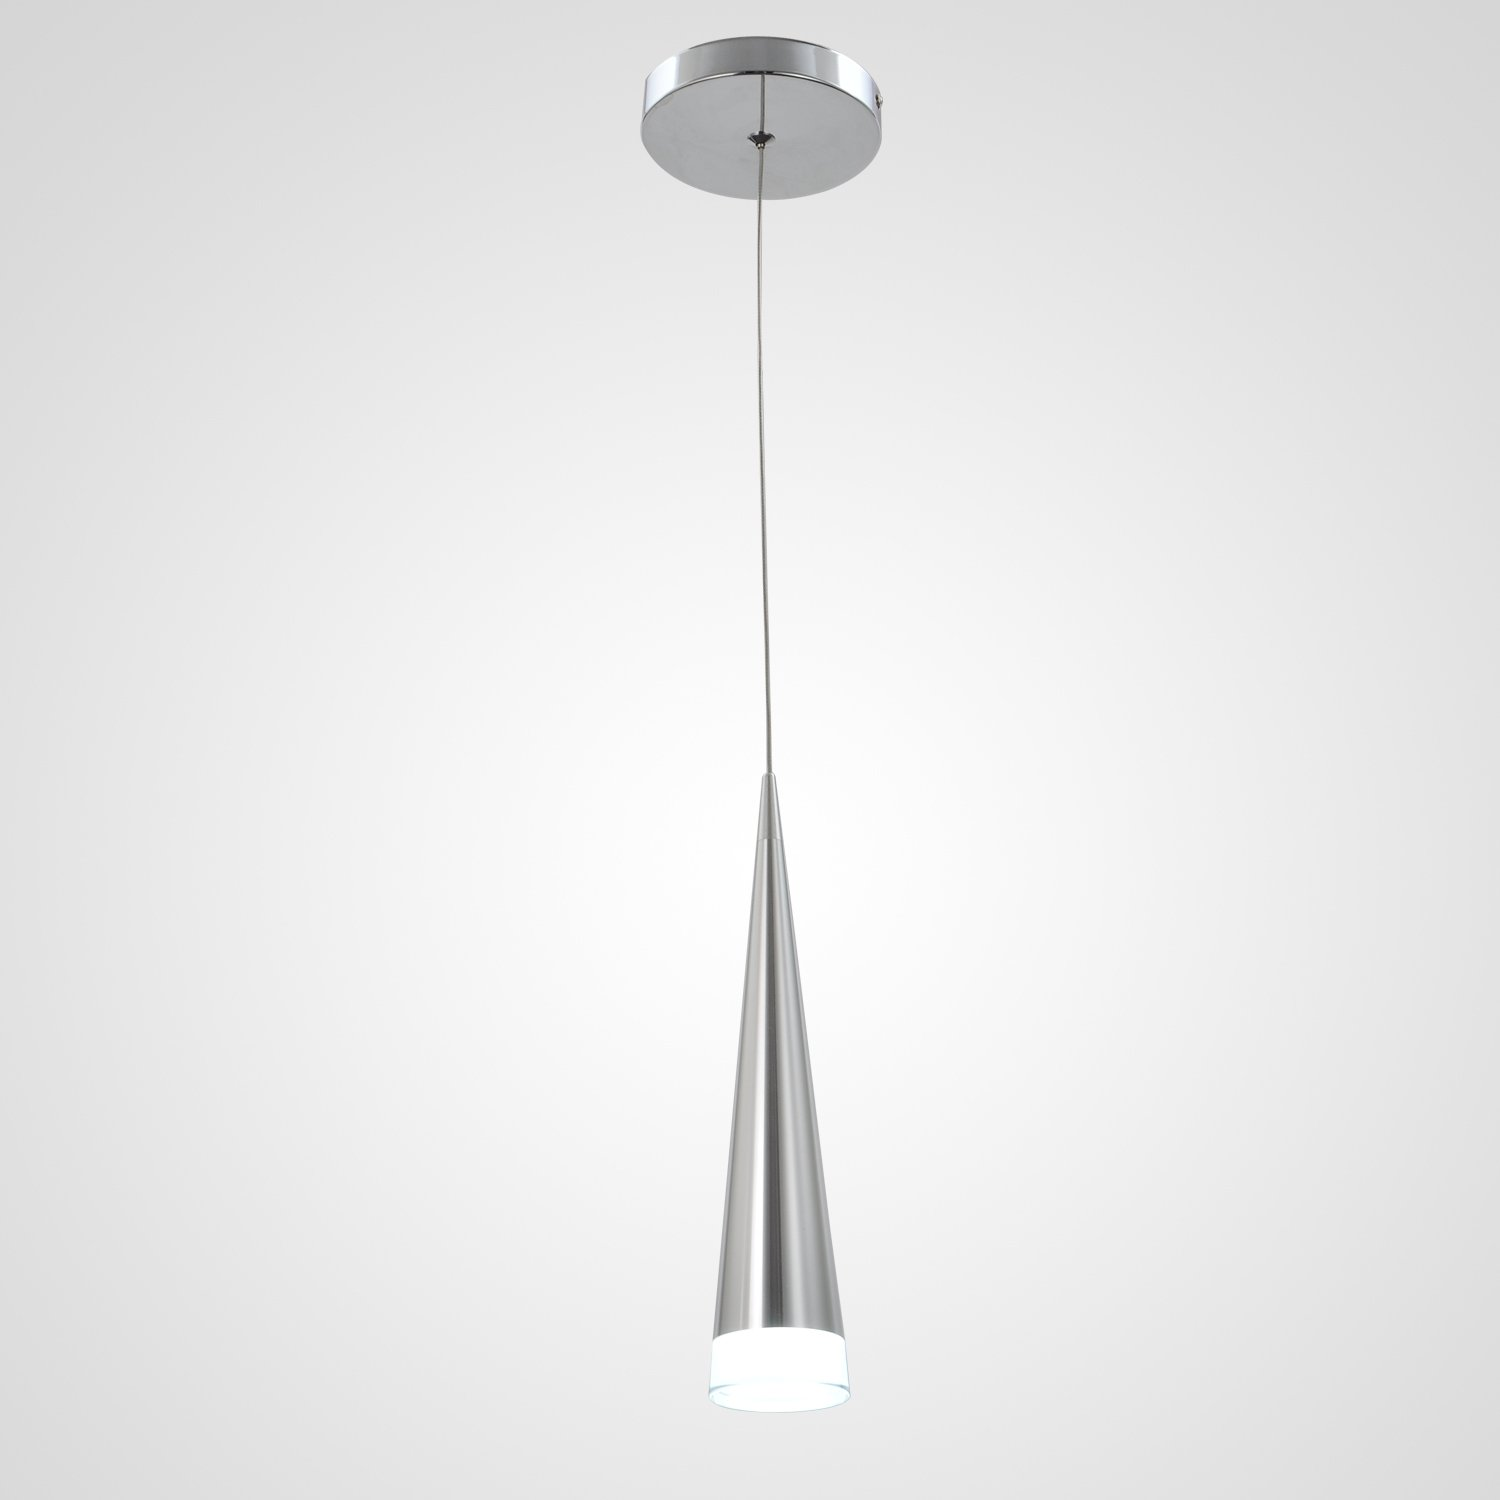 Unitary Brand Modern Nature White LED Acrylic Pendant Light Max 5w Plating Finish by Unitary (Image #2)